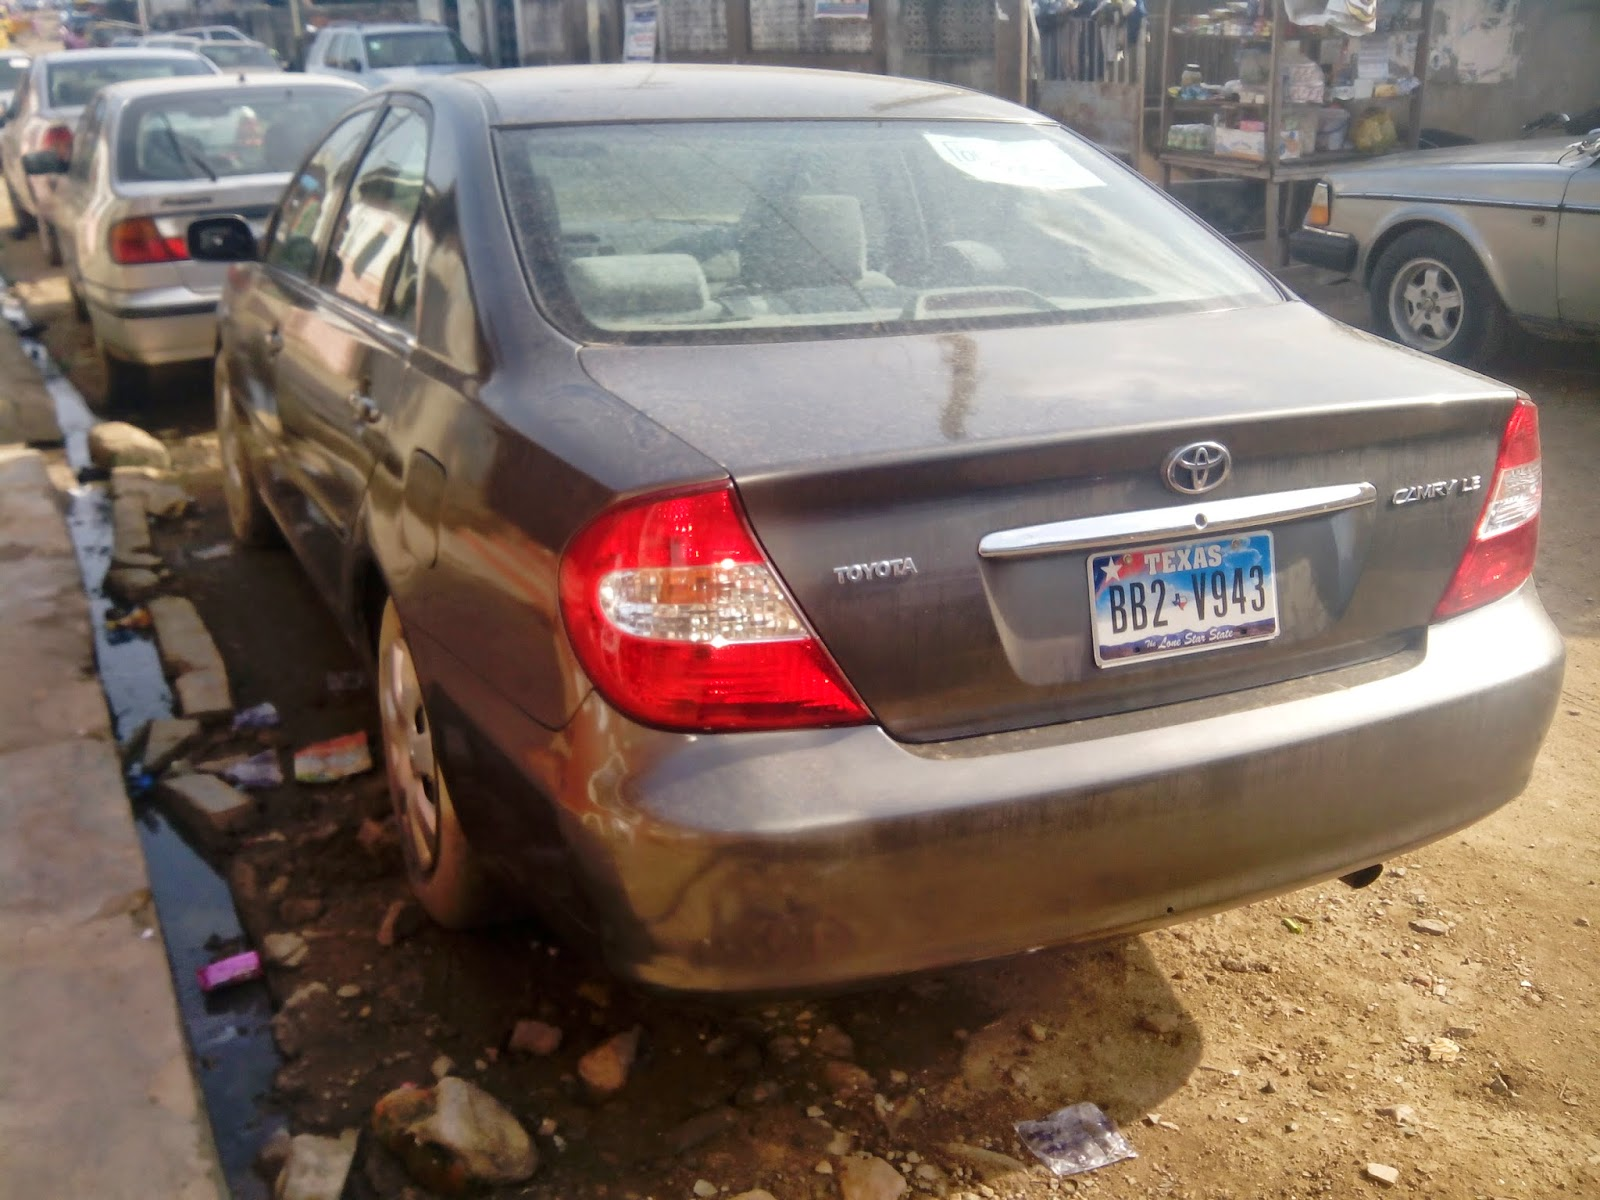 extra neat 2004 model toyota camry for sale at an affordable price in lagos nigeria tokunbo modern cheap fairly used cars in nigeria